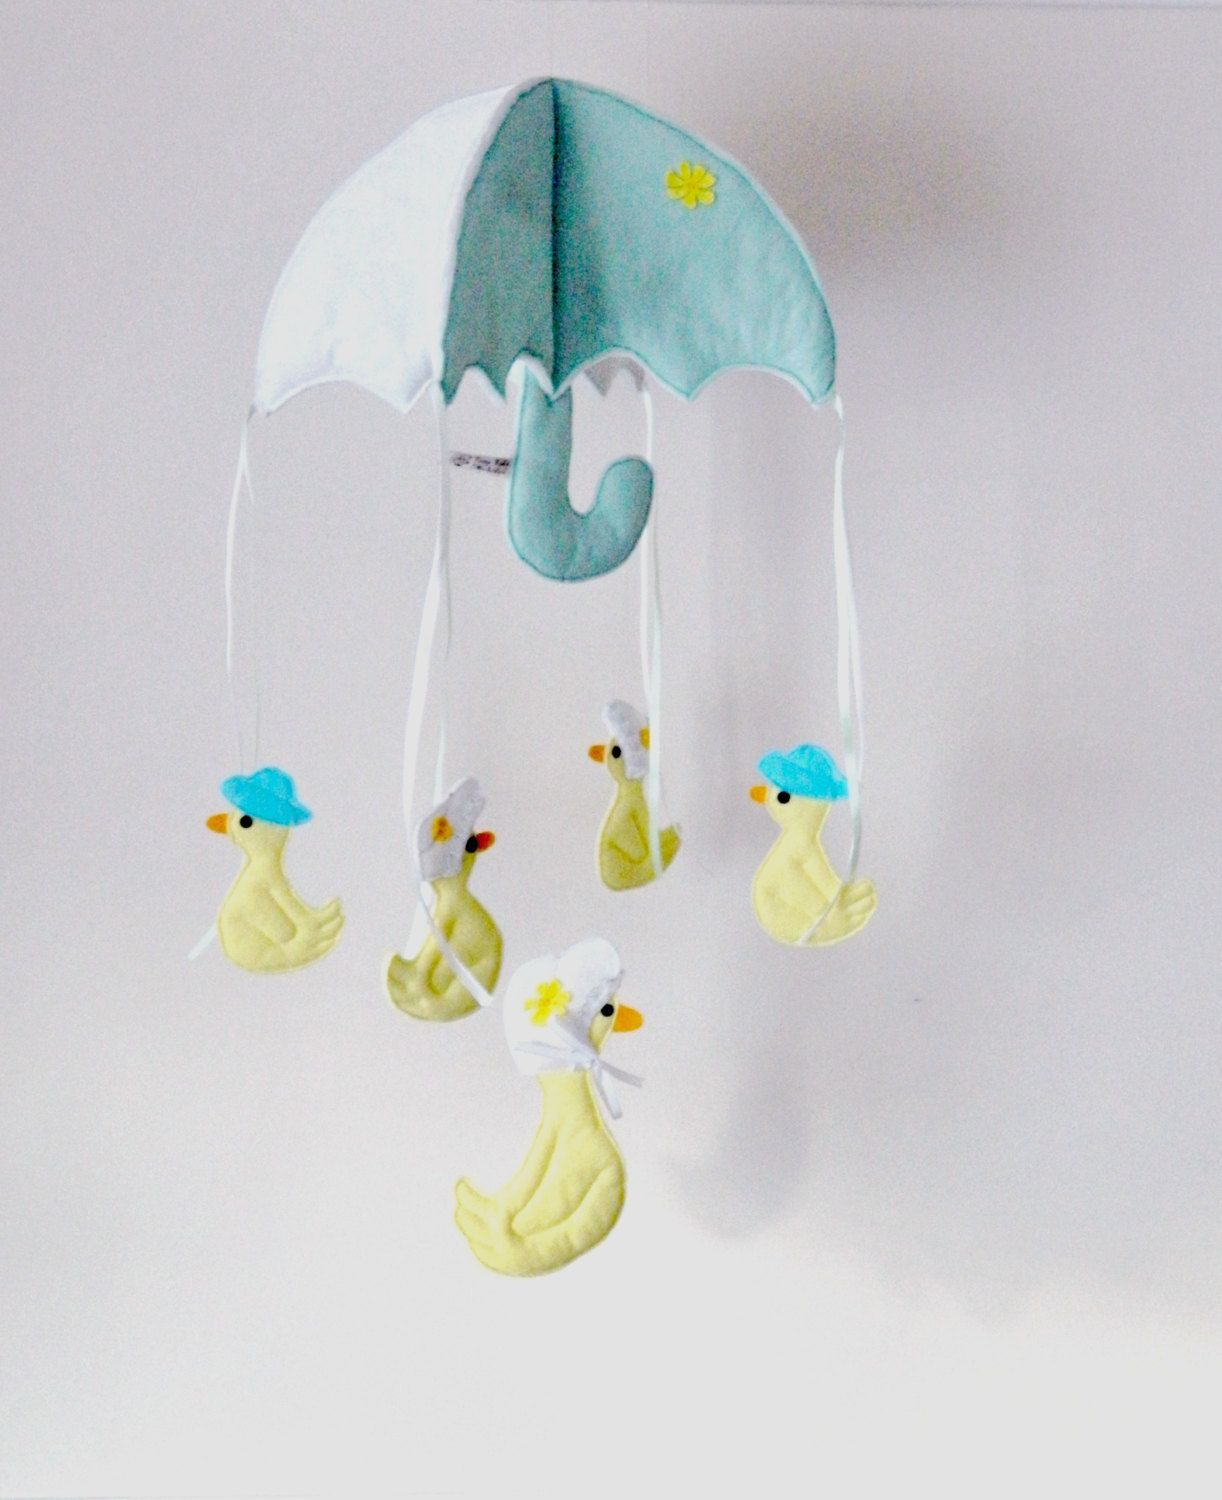 Baby's mobile hanging Crib Cot Felt child's by TinyTotsMobiles, £30.00